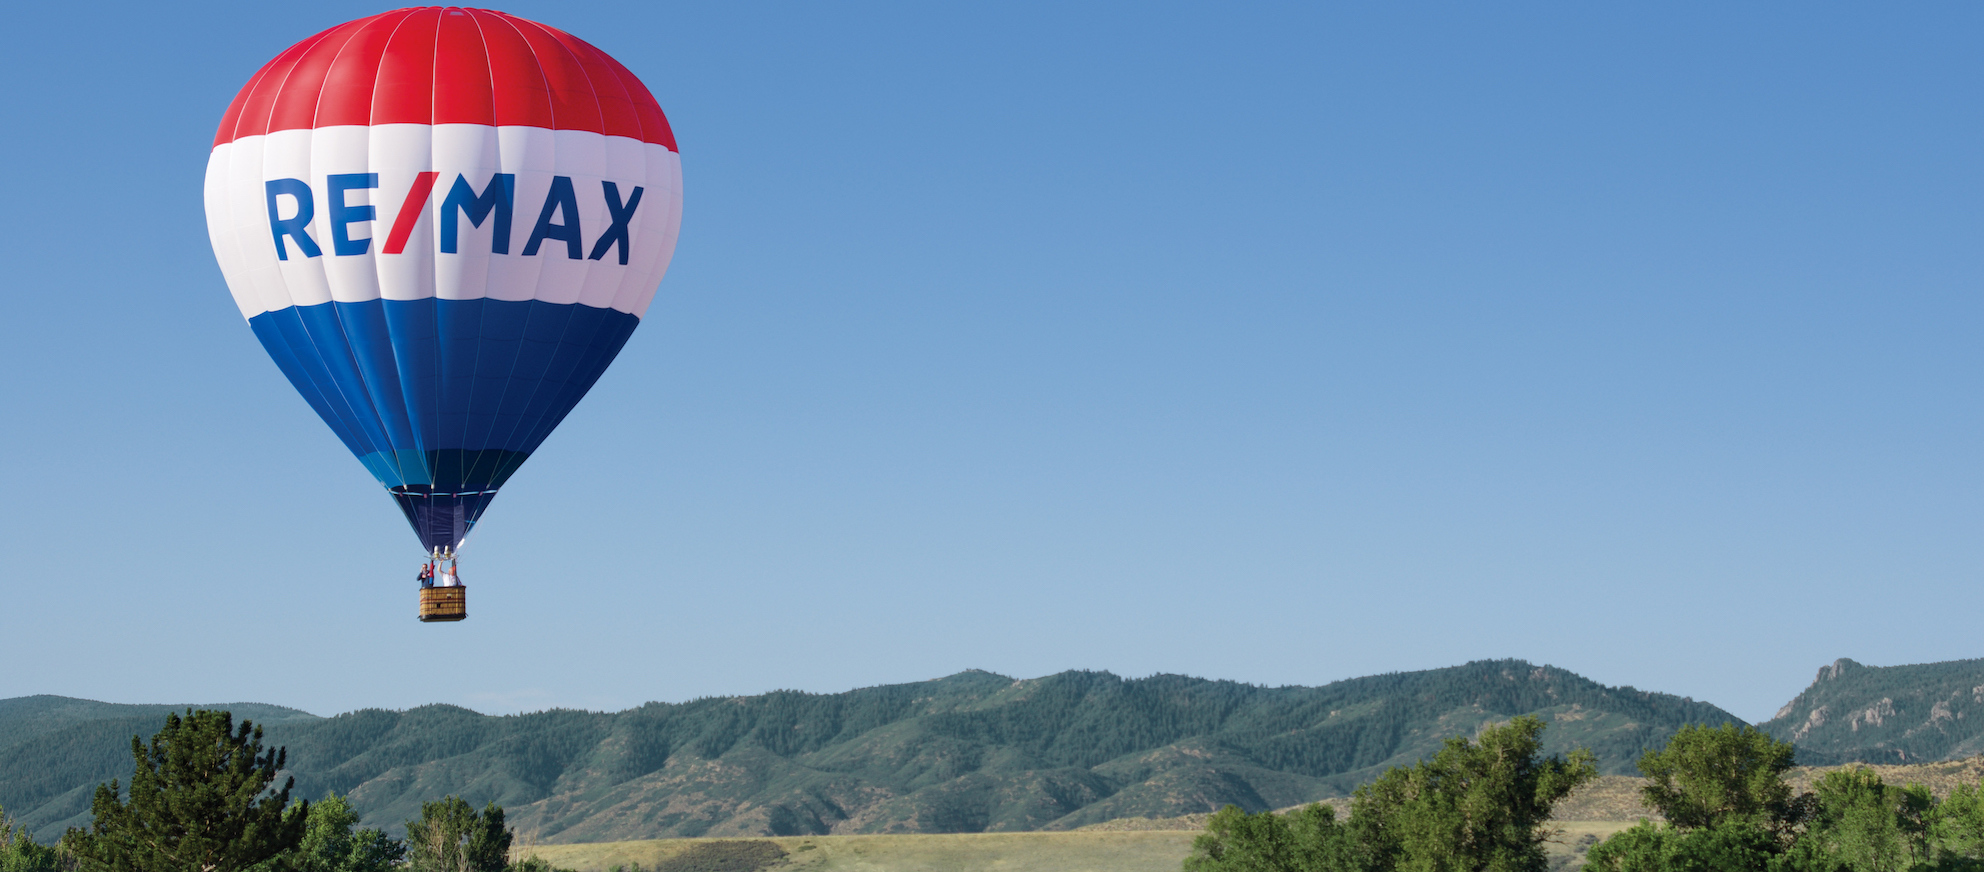 Re/Max earnings